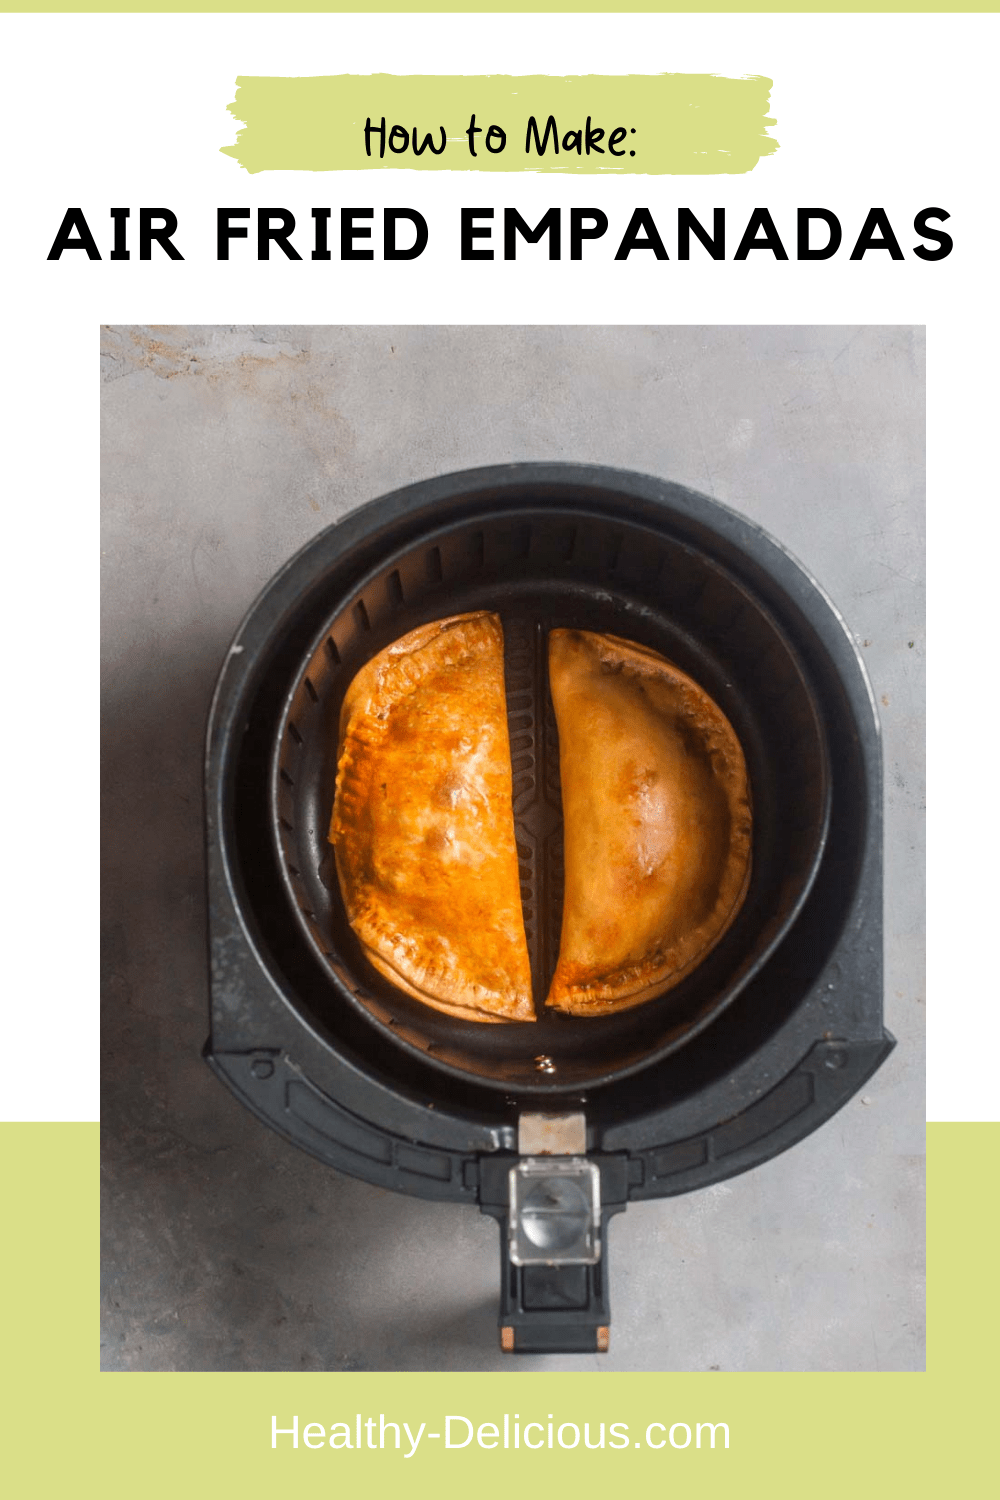 Crispy, crunchy air fryer empanadas are so easy to make at home without the mess or uncertain timing of deep-frying. These come out of the air fryer perfectly crisp and golden brown every time. Plus you can use any filling you want, which makes them great for picky eaters! Use leftover chili, chicken, or cheese! via @HealthyDelish